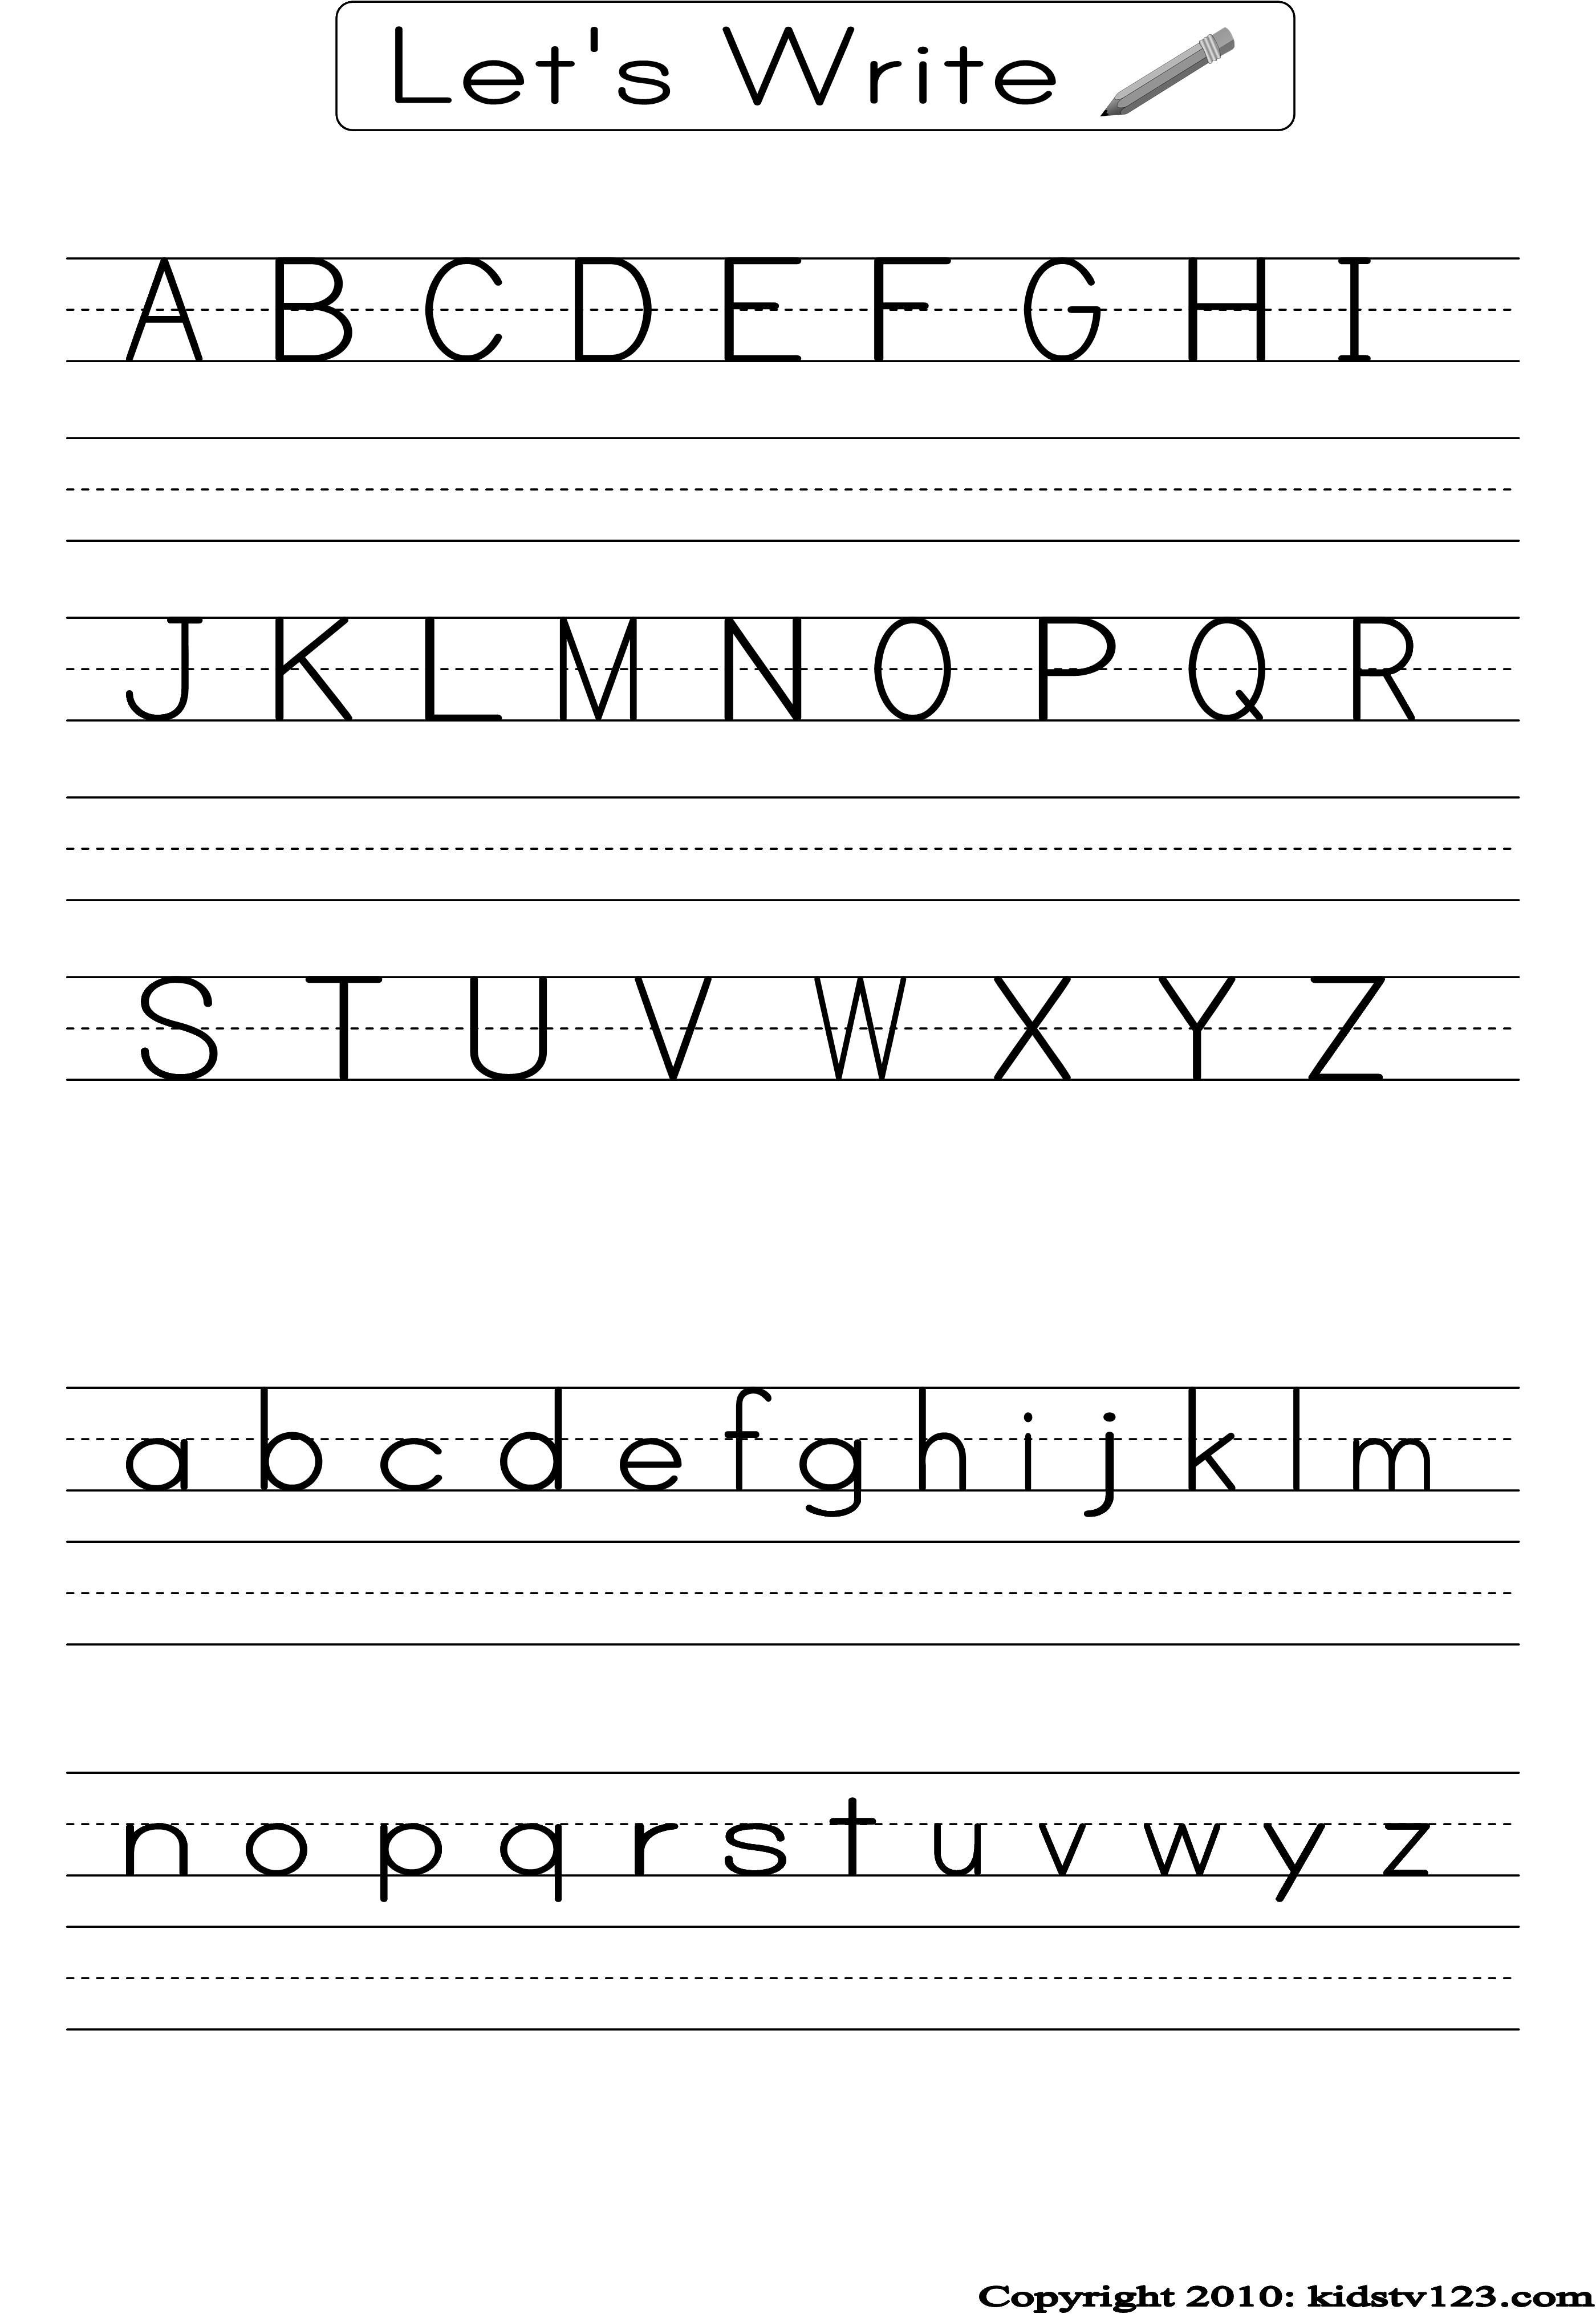 Alphabet writing practice sheet | Edu-fun | Alphabet worksheets ...